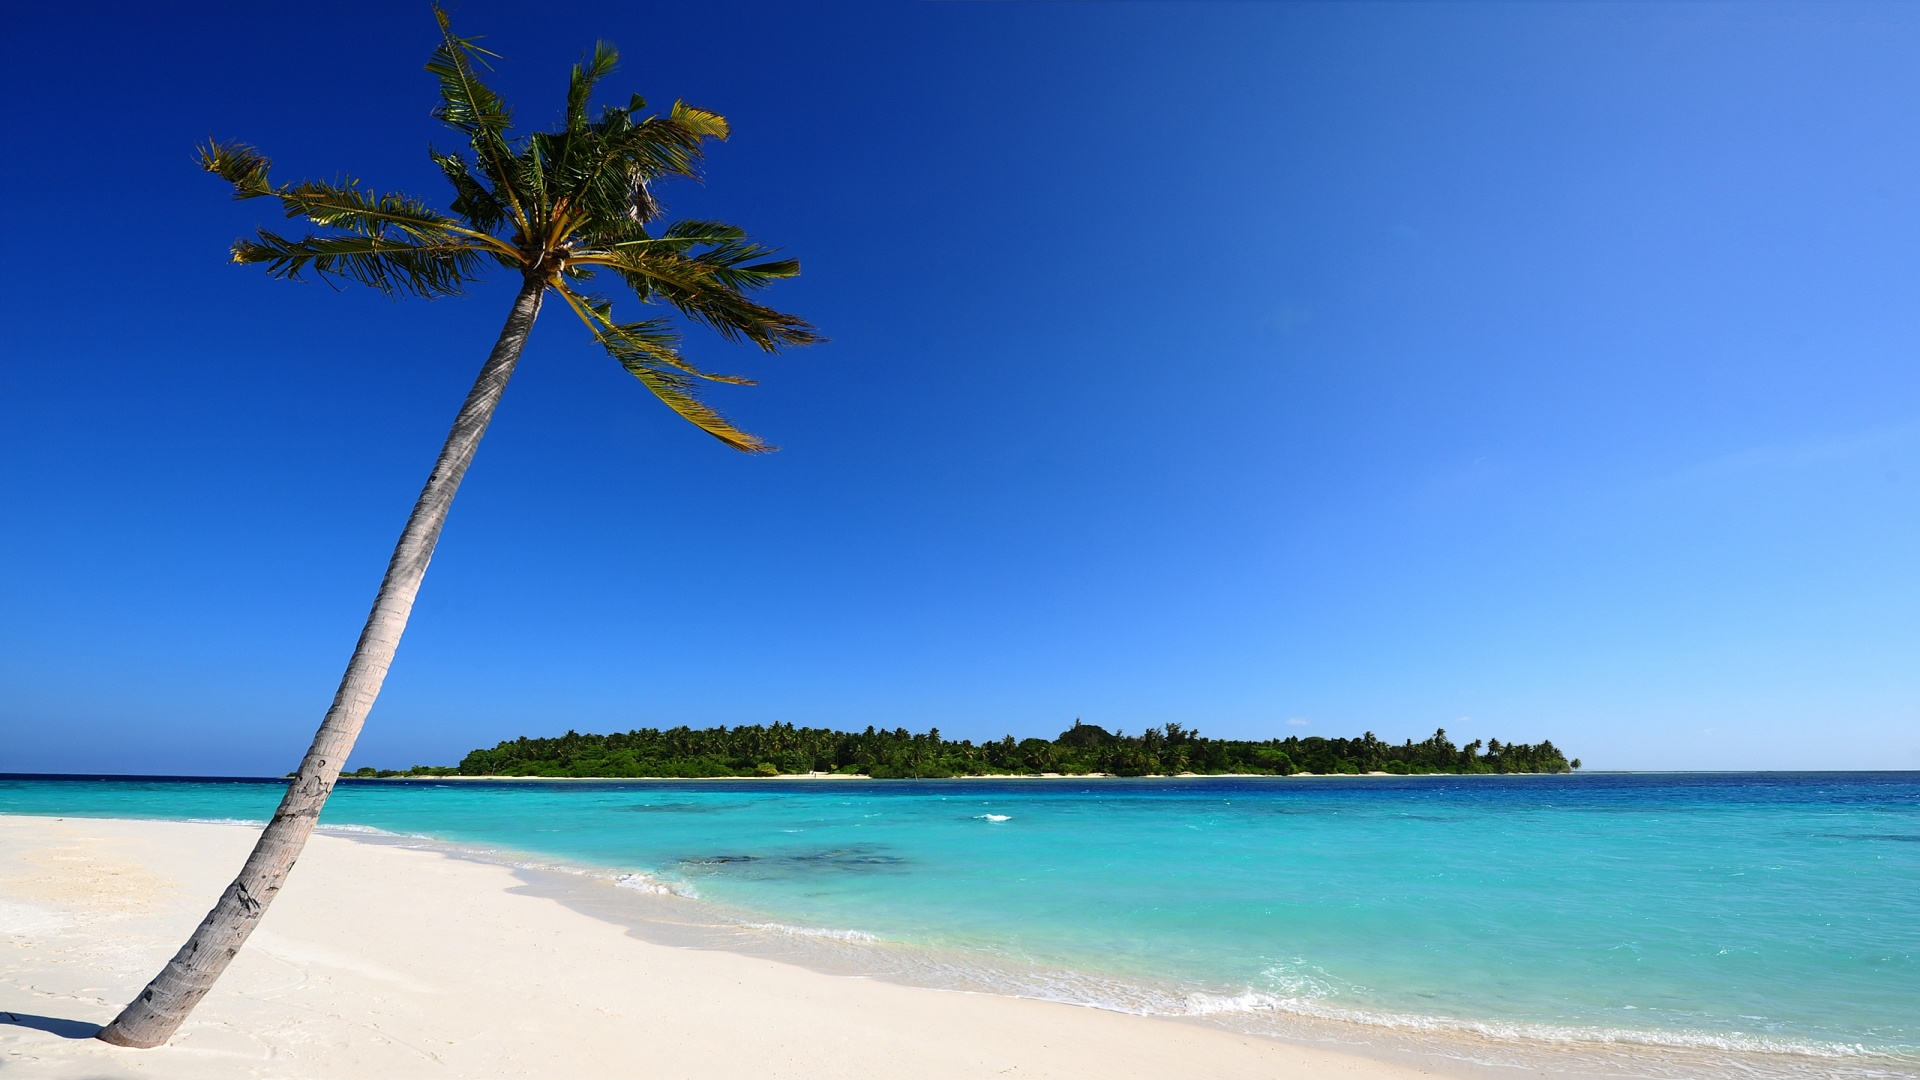 maldivian beach wallpapers in jpg format for free download